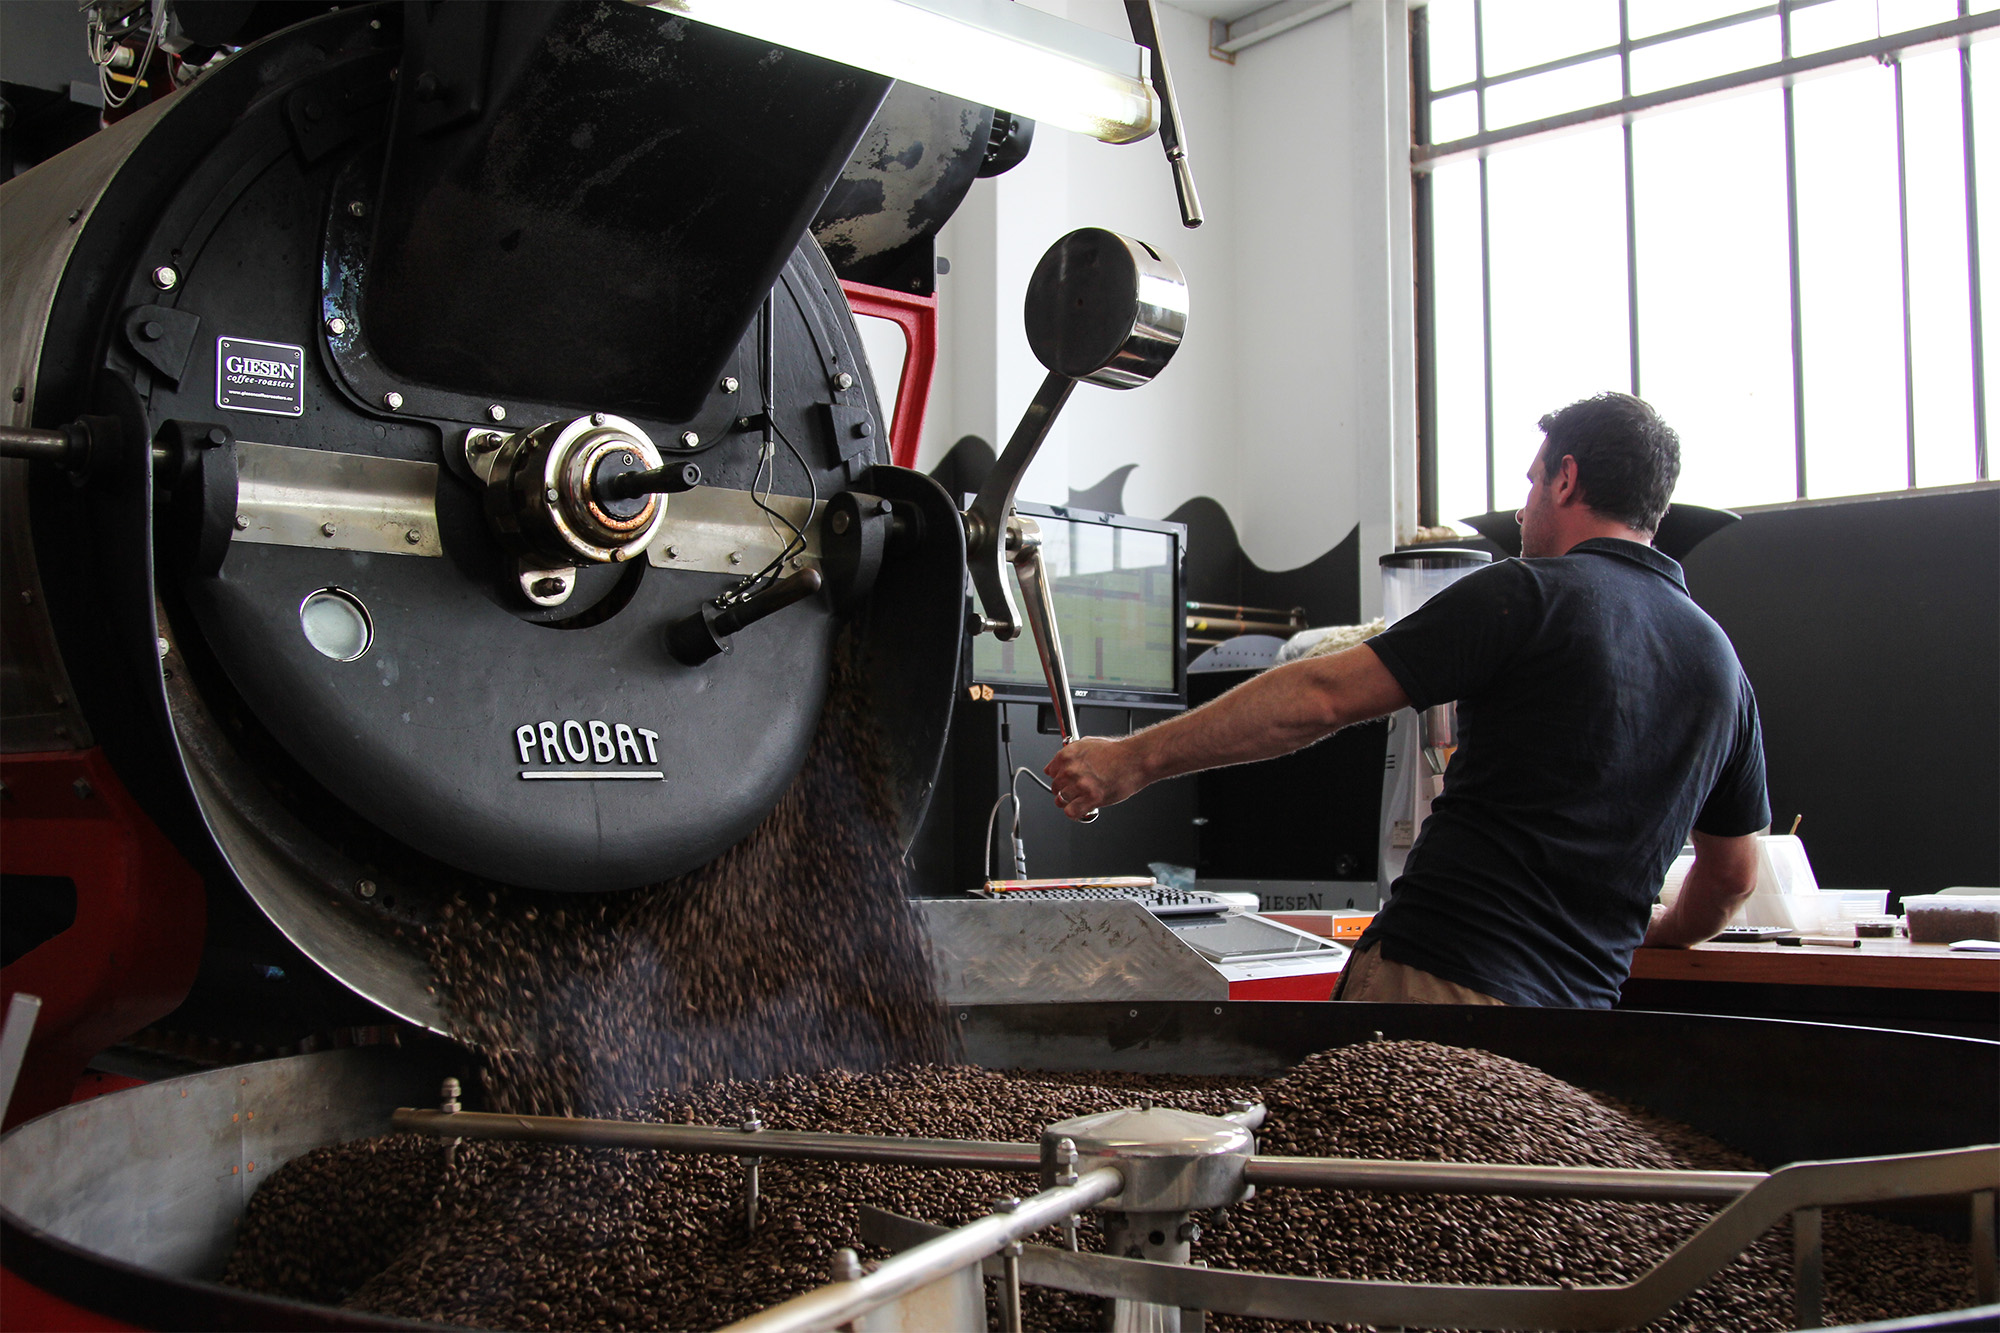 A Review Of Singapore Coffee Roasters